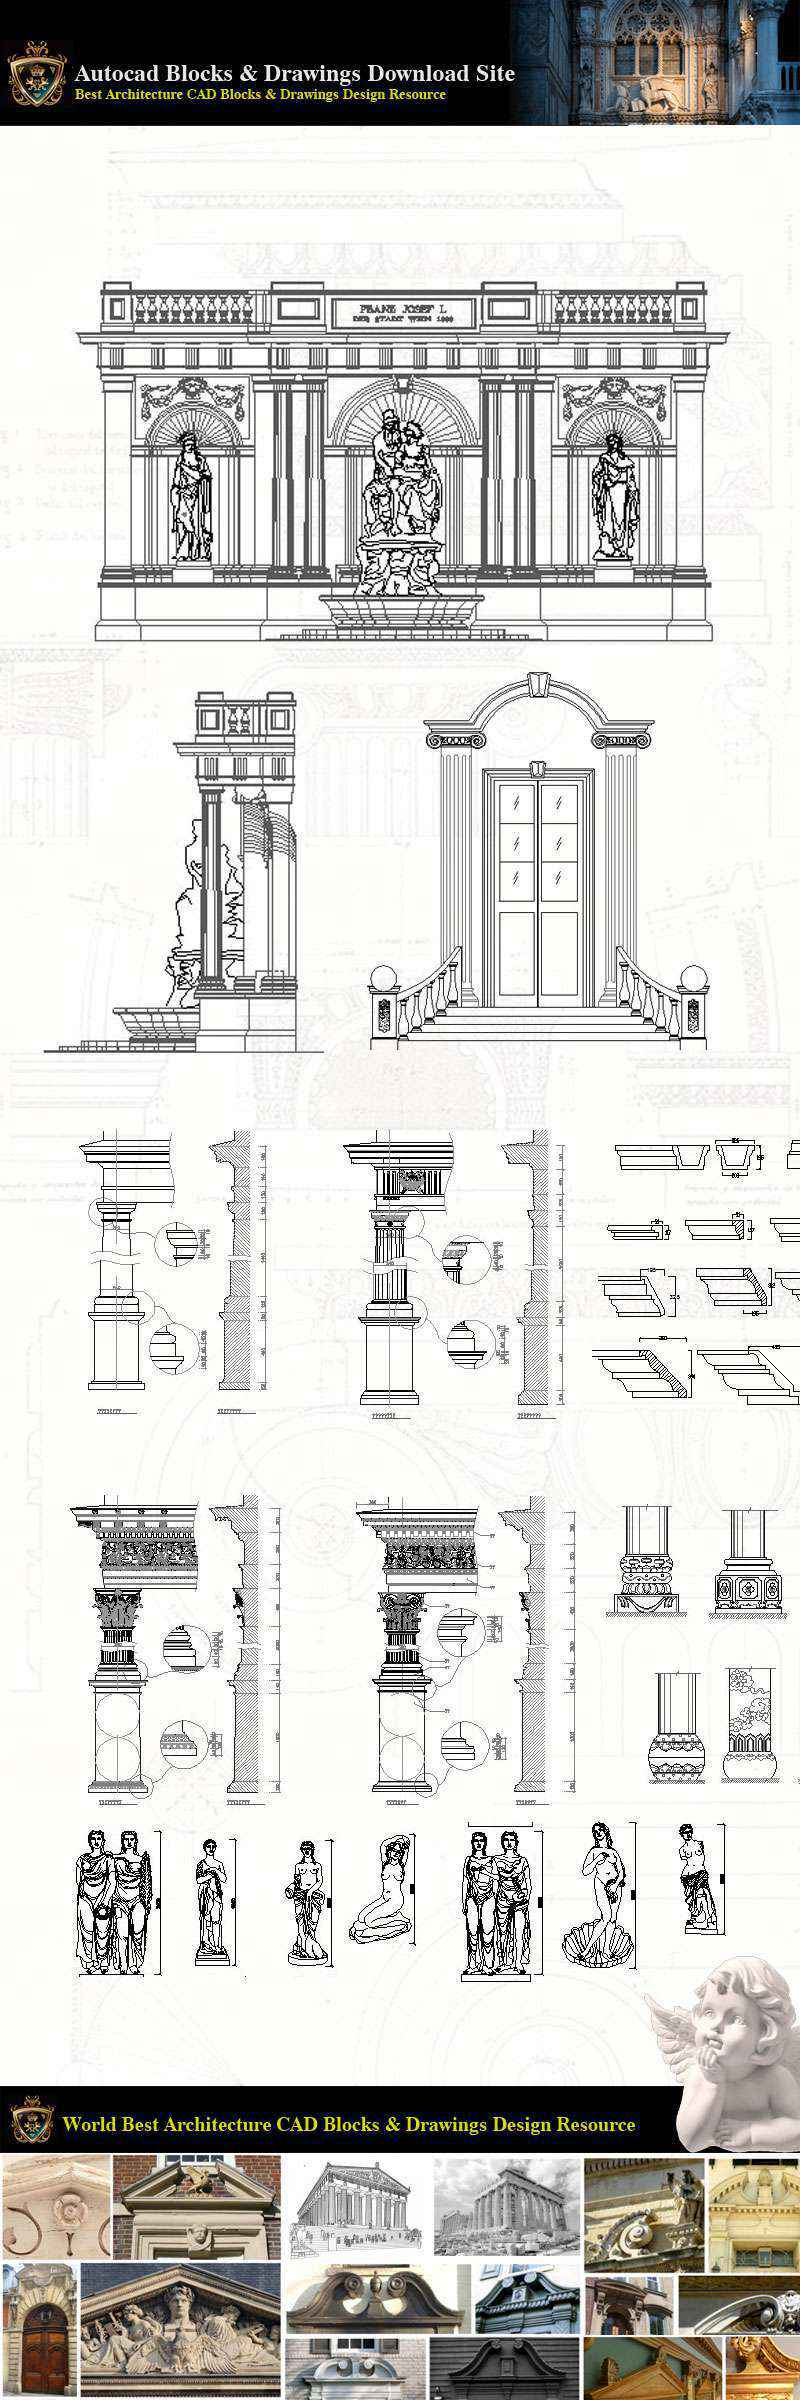 Neoclassical Style Decor Cad Design Elements V 4 Neoclassical Interior Home Decor Traditional Home Decorating Decoration Free Cad Download Site Autocad Drawings Blocks